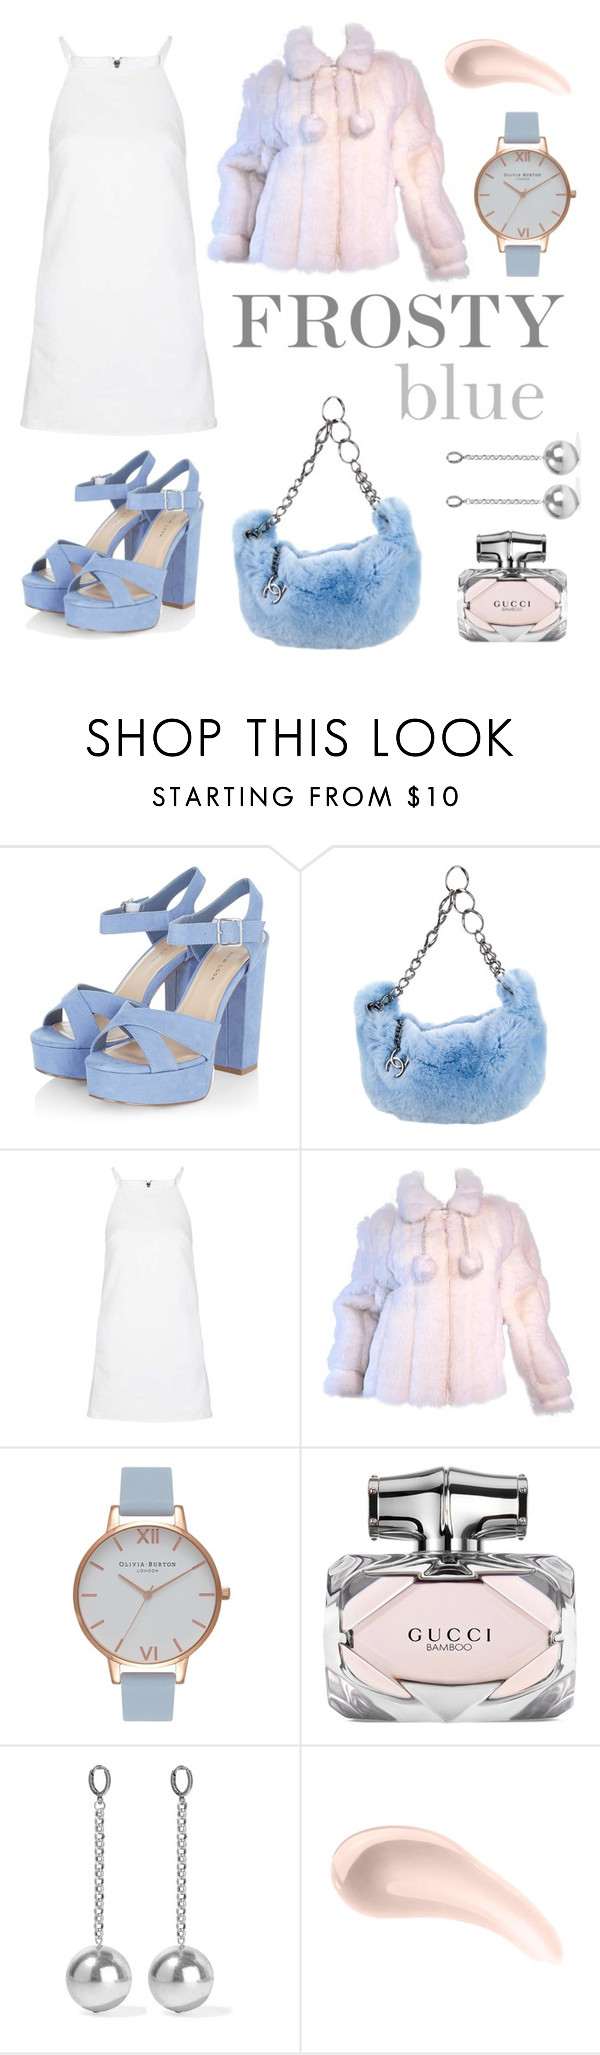 """""""Frosty blue"""" by matildasinc ❤ liked on Polyvore featuring Chanel, Topshop, Oleg Cassini, Olivia Burton, Gucci, Isabel Marant and Soap & Glory"""